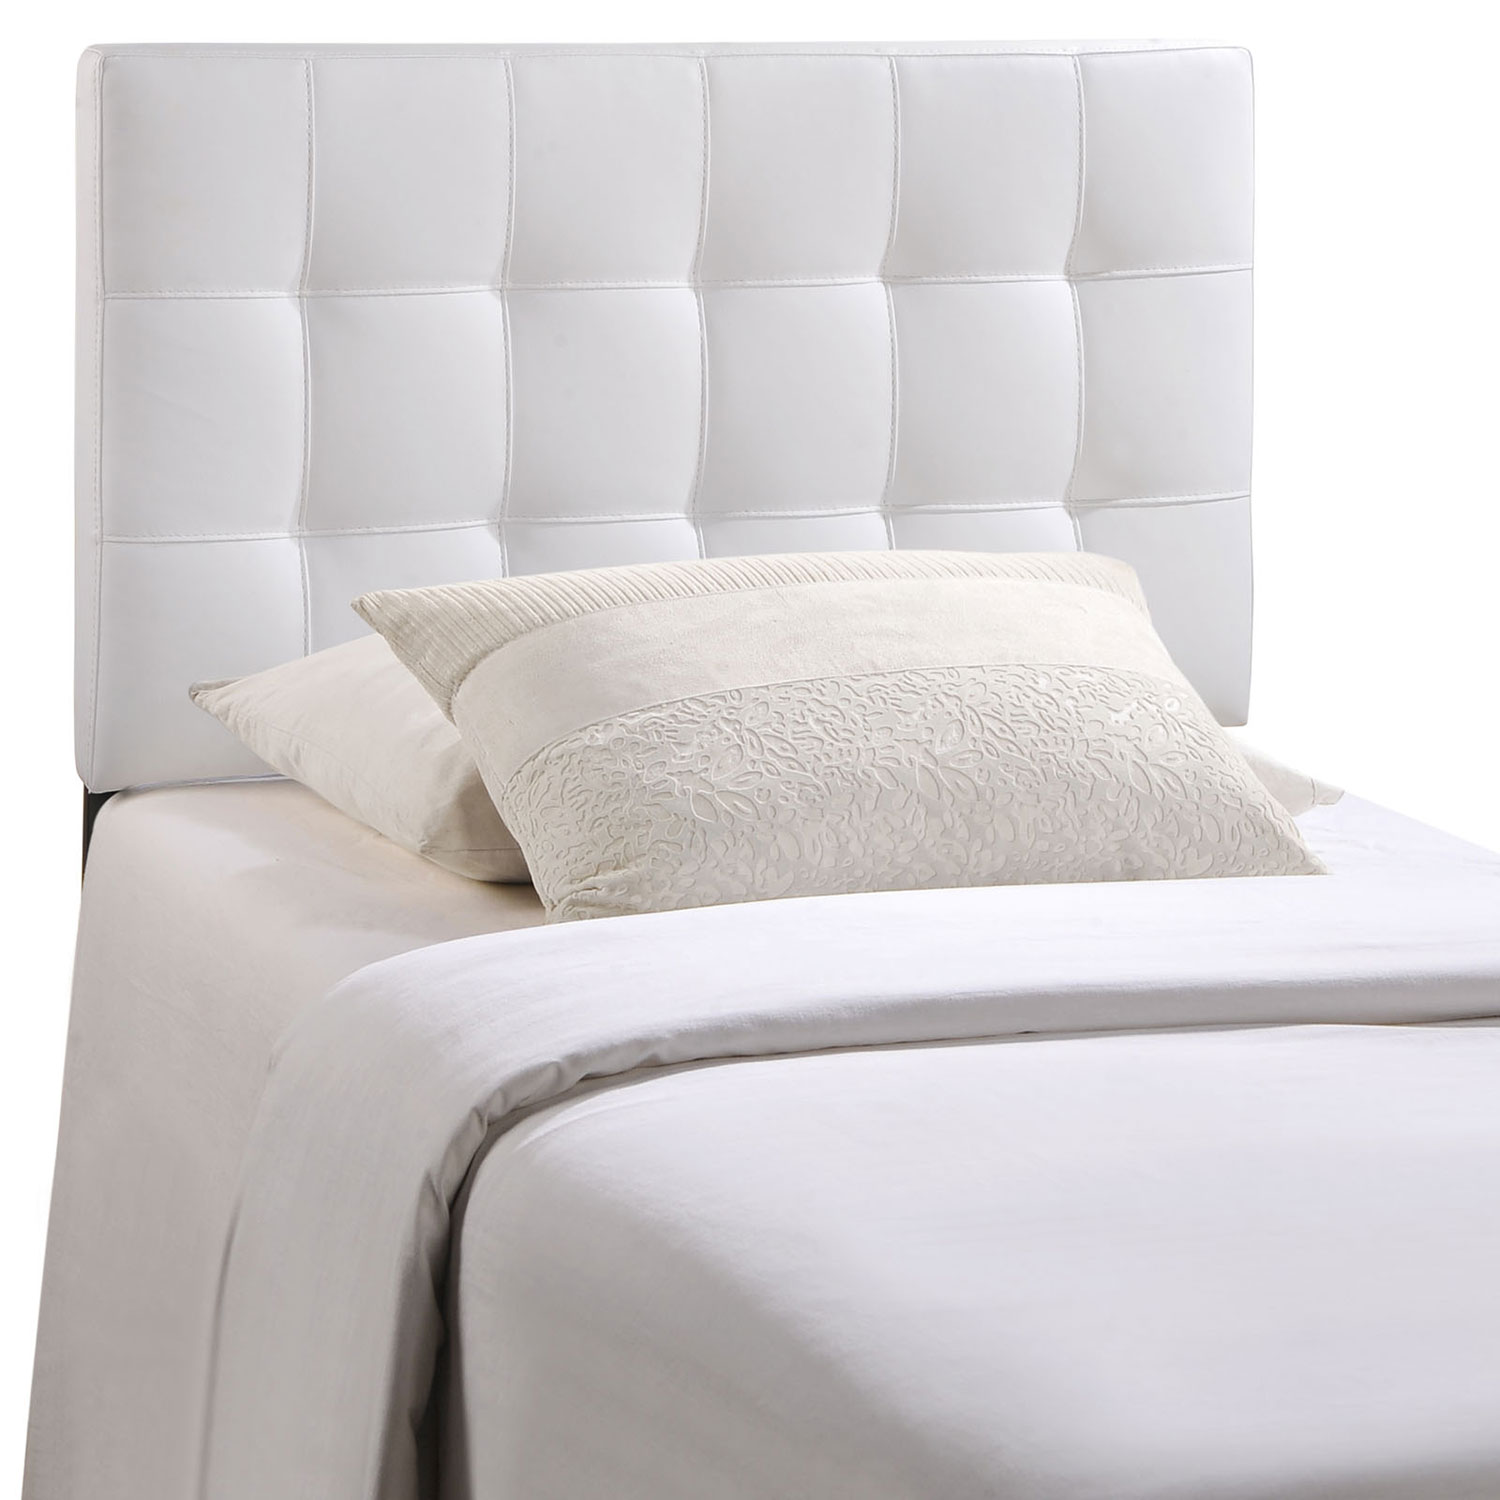 Modway Lily Vinyl Headboard White Mw Mod 5149 Whi Hb At